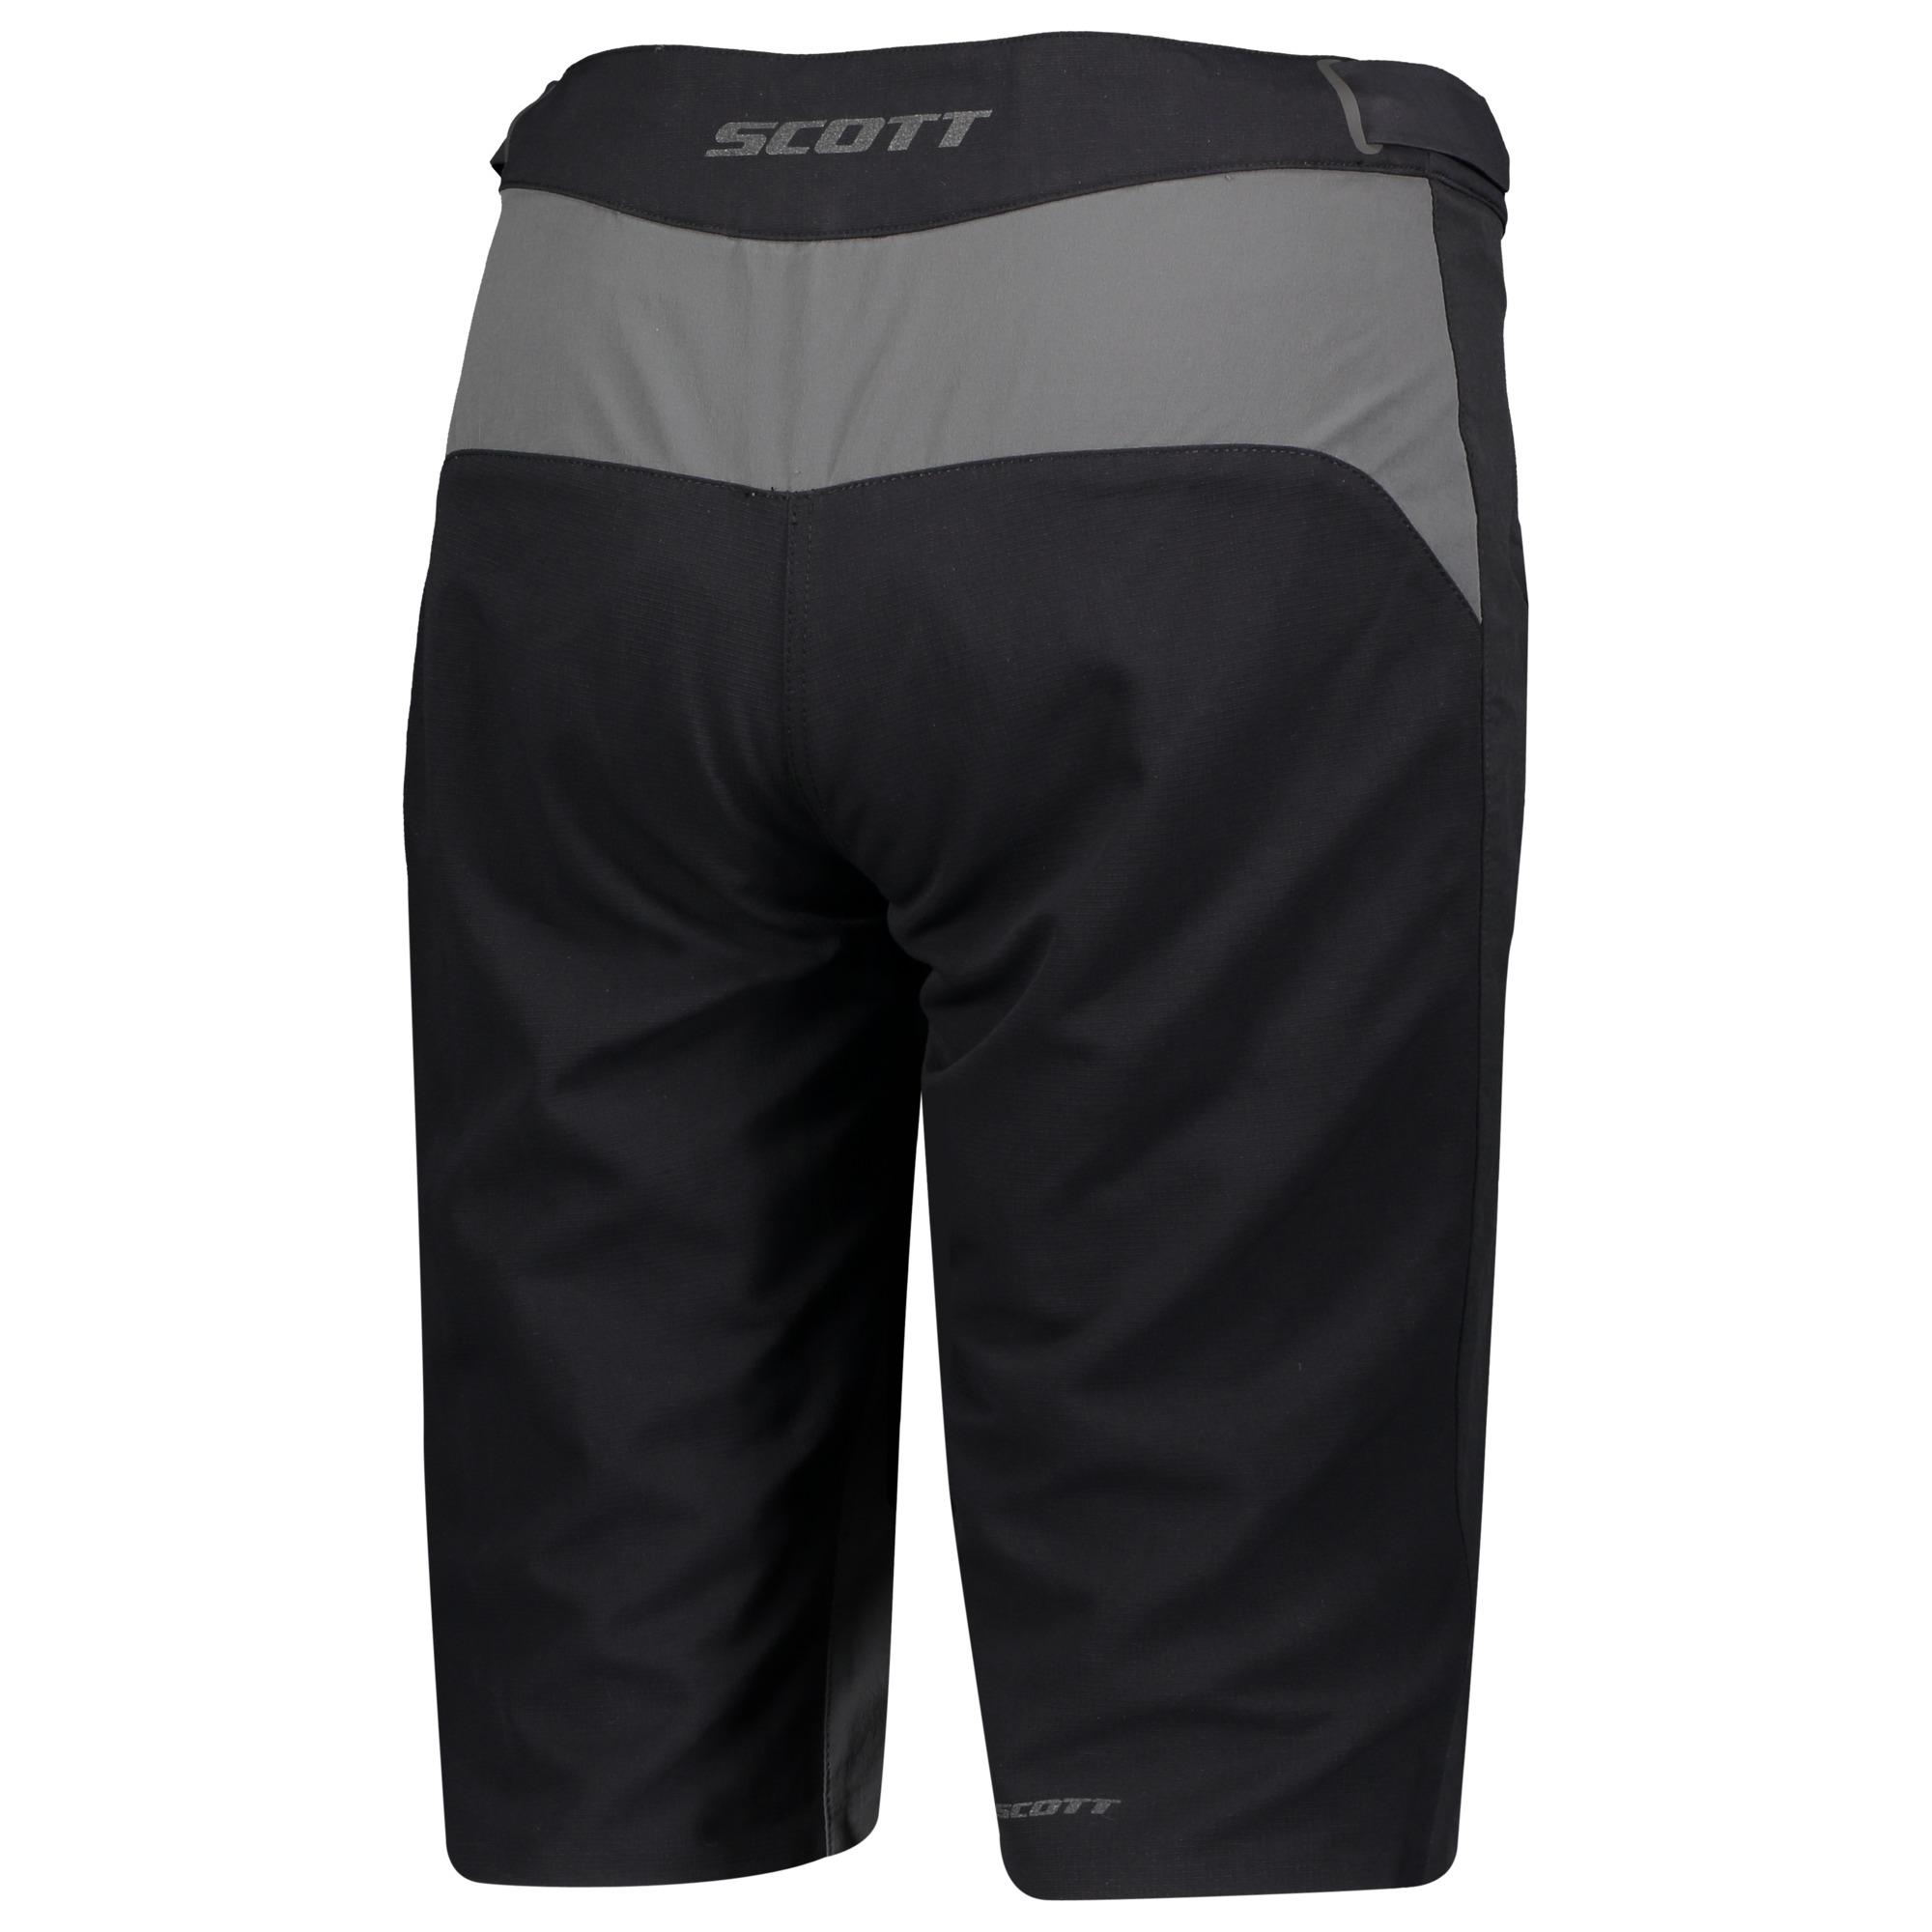 SCOTT Trail Vertic Pro w/pad Women's Shorts